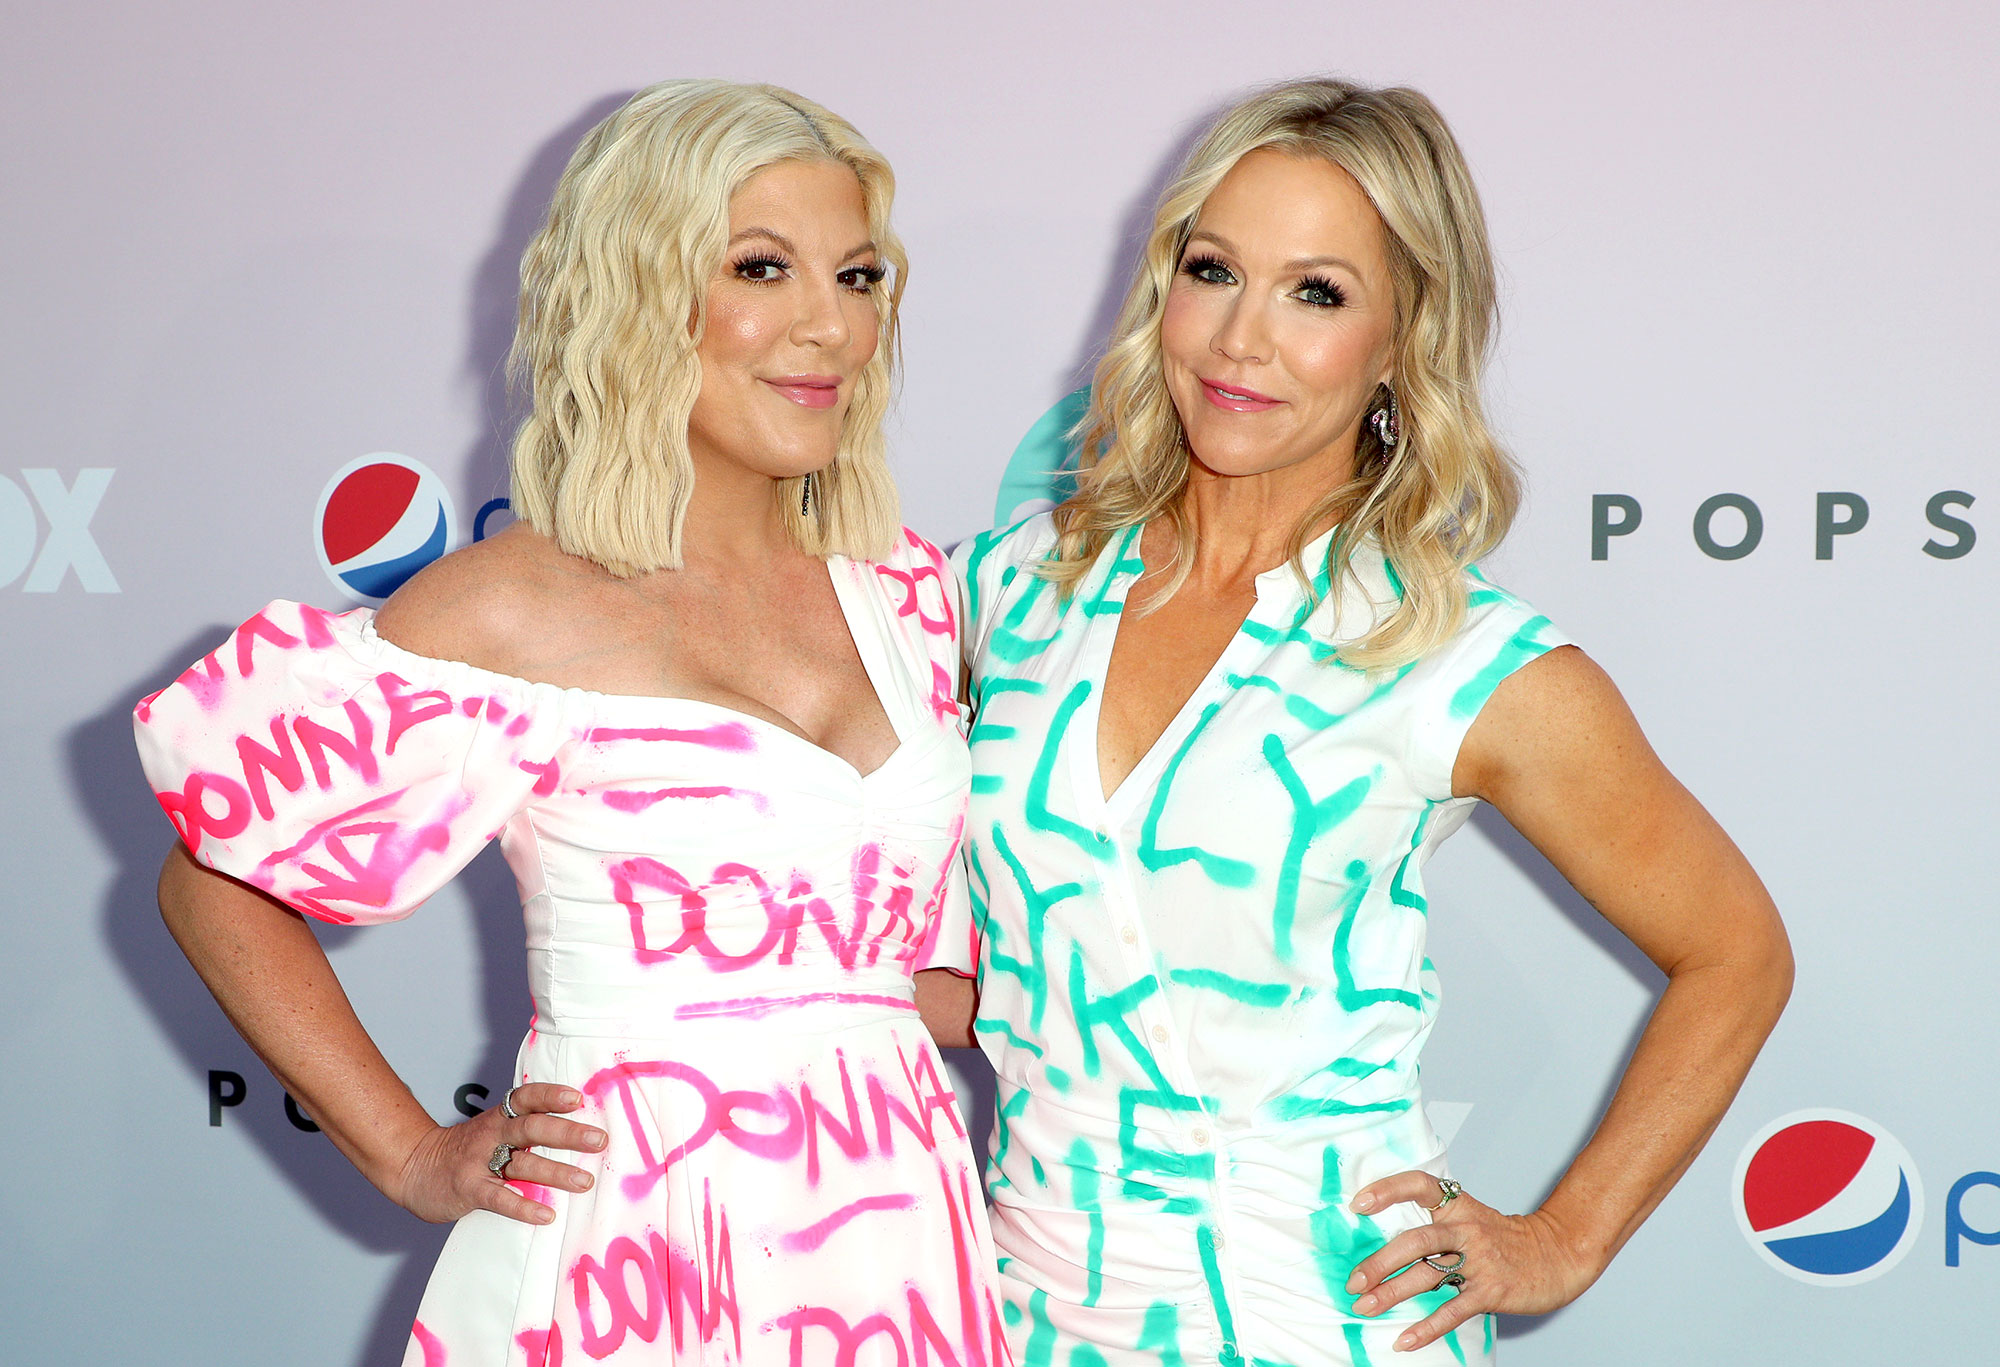 Tori Spelling and Jennie Garth Wearing Clothes With Donna and Kelly Written on Them Say Aaron Spelling Would Be Proud BH90210 - Tori Spelling and Jennie Garth arrive at the BH90210 Peach Pit Pop-Up on August 3, 2019 in Los Angeles, California.